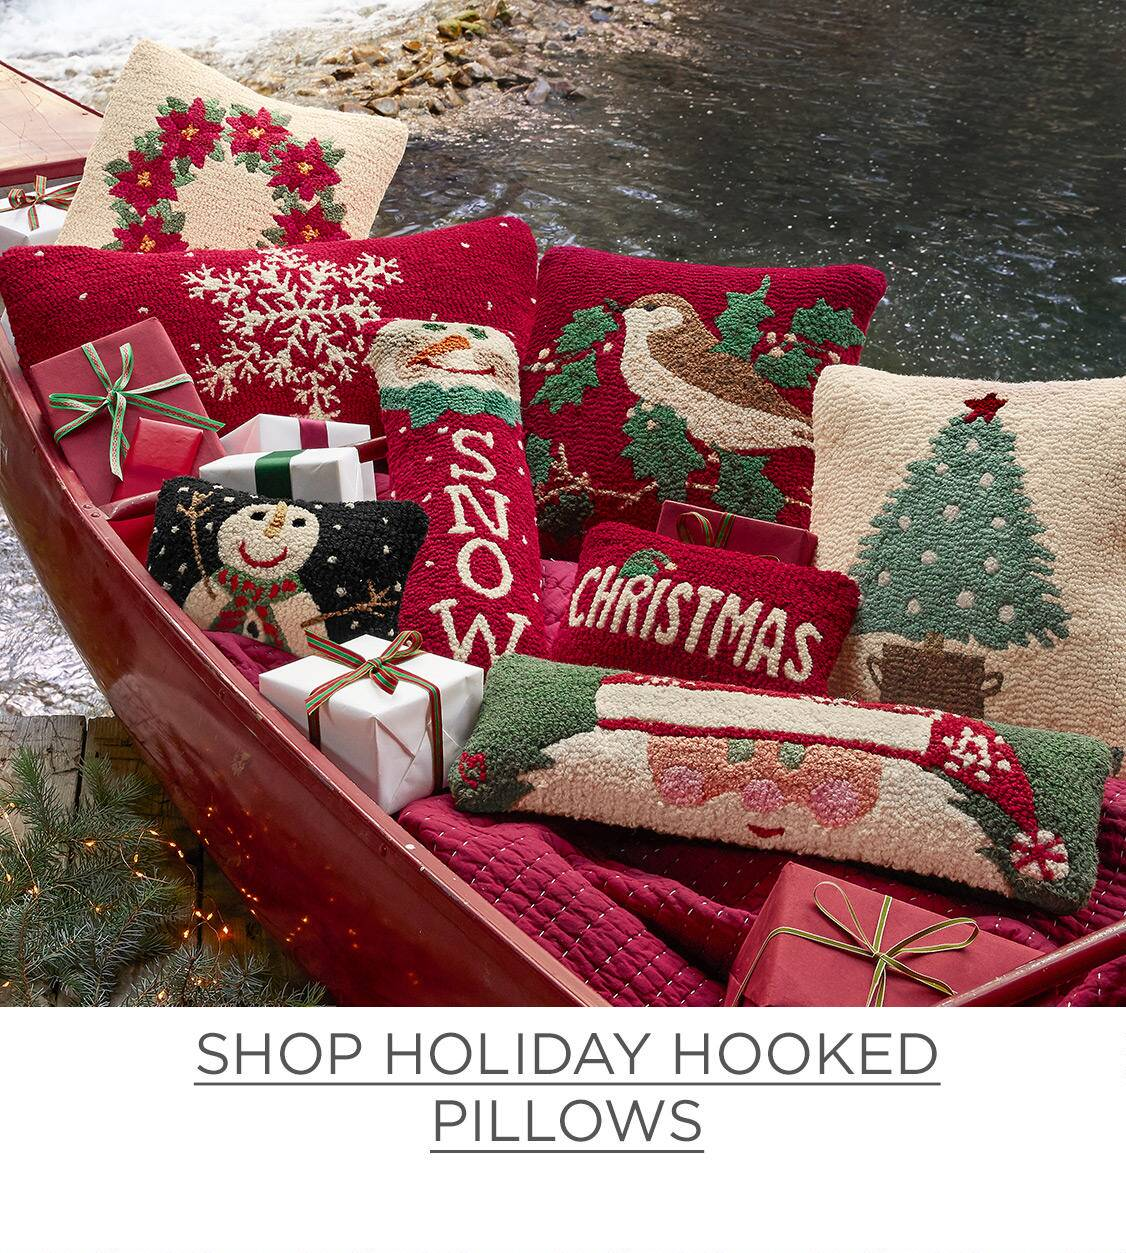 Shop Holiday Pillows